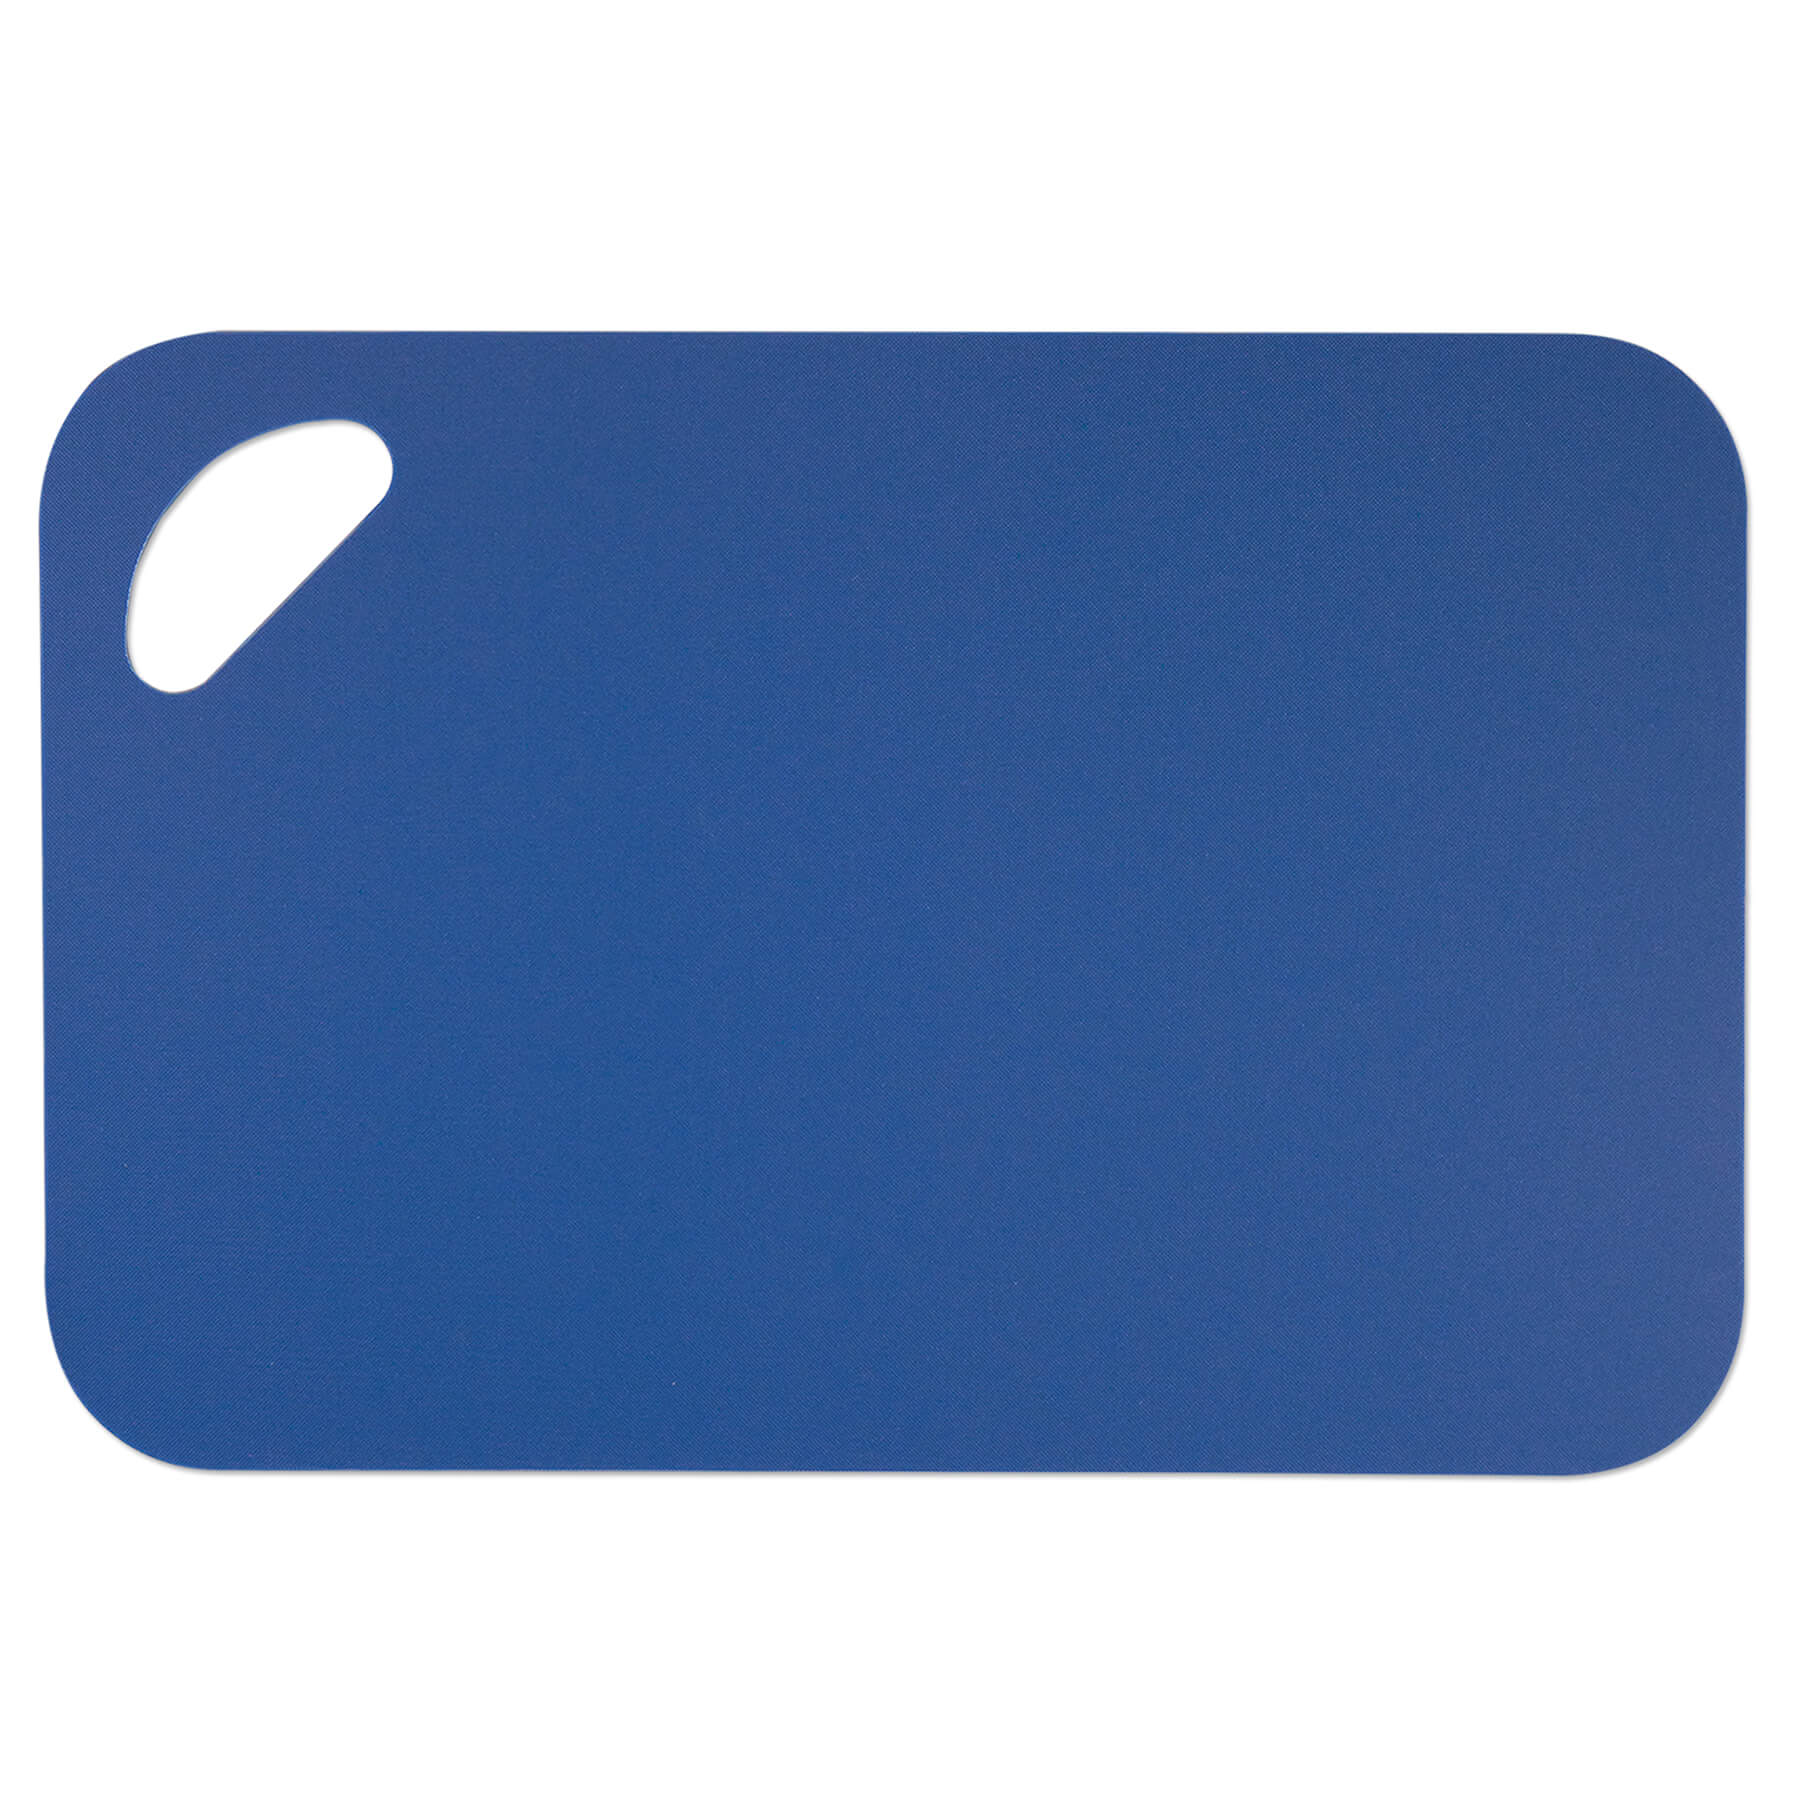 Cutting Board Blue